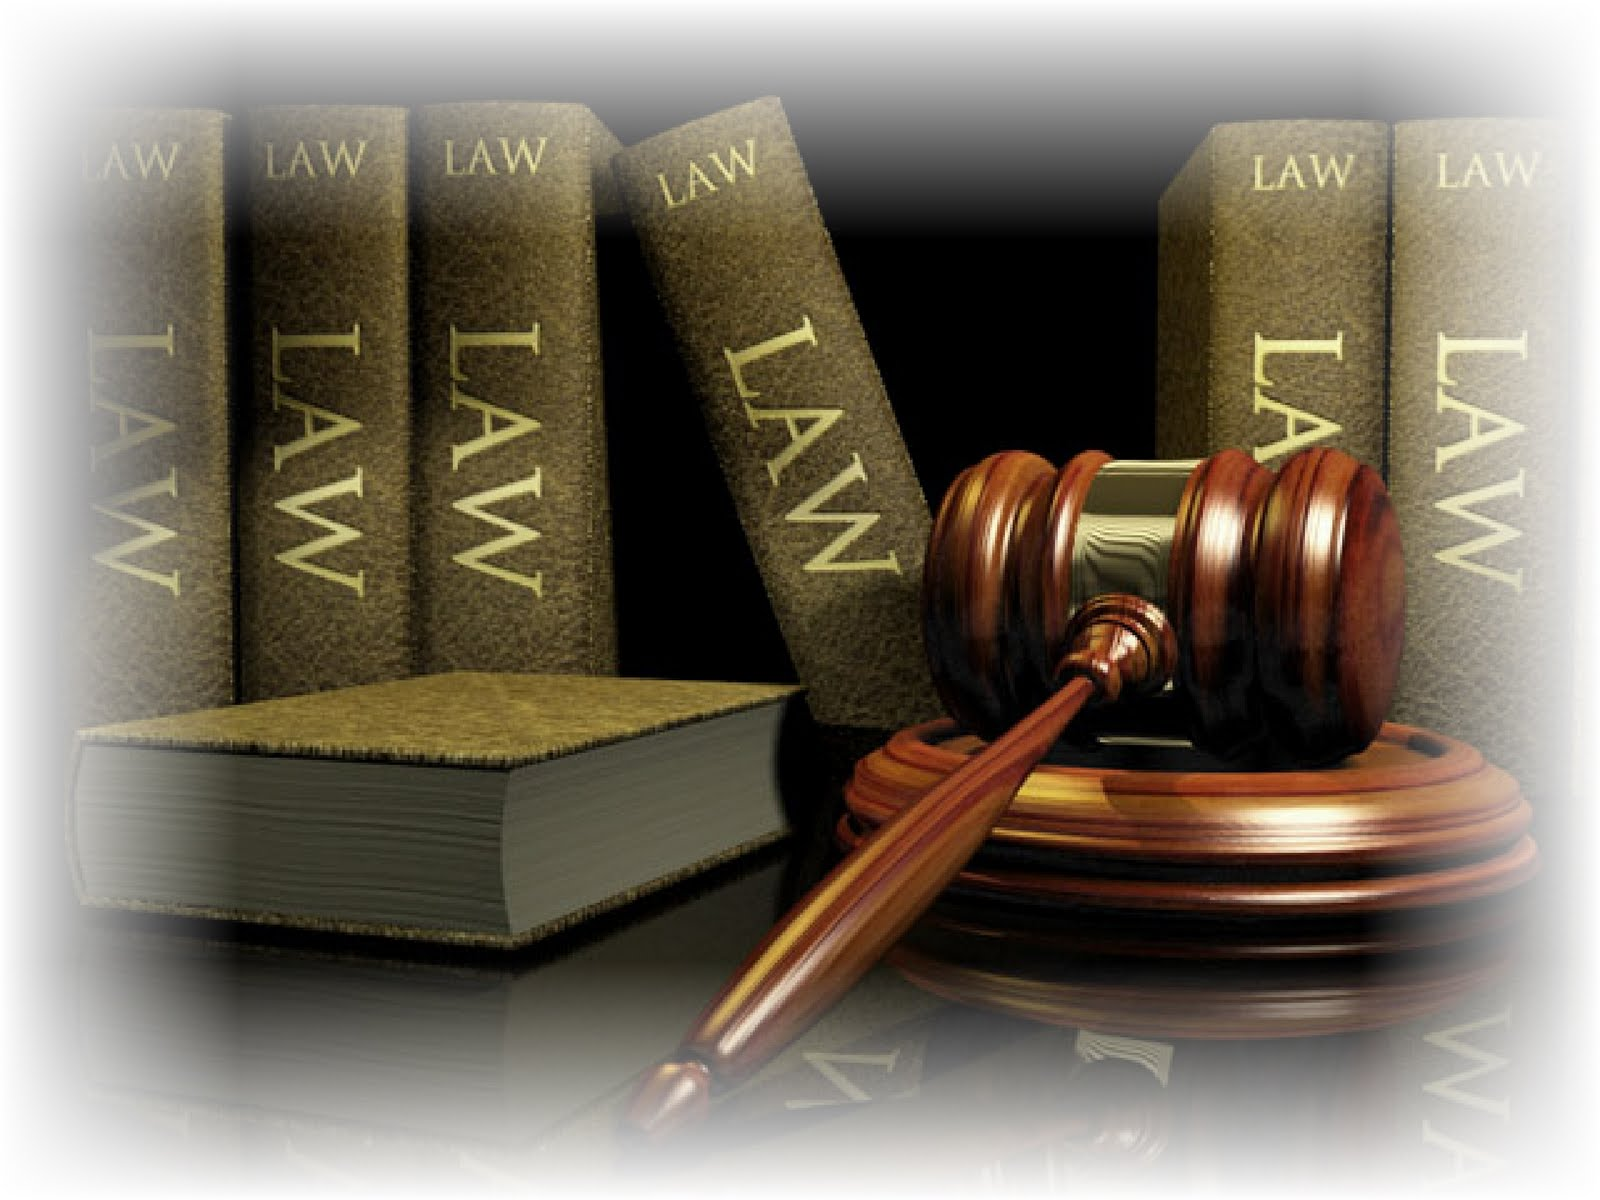 About Coaching for clat in chandigarh  | JURIST LAW ACADEMY | Coaching for clat in chandigarh, Best Coaching for clat in chandigarh, Top Coaching for clat in chandigarh  - GL11459